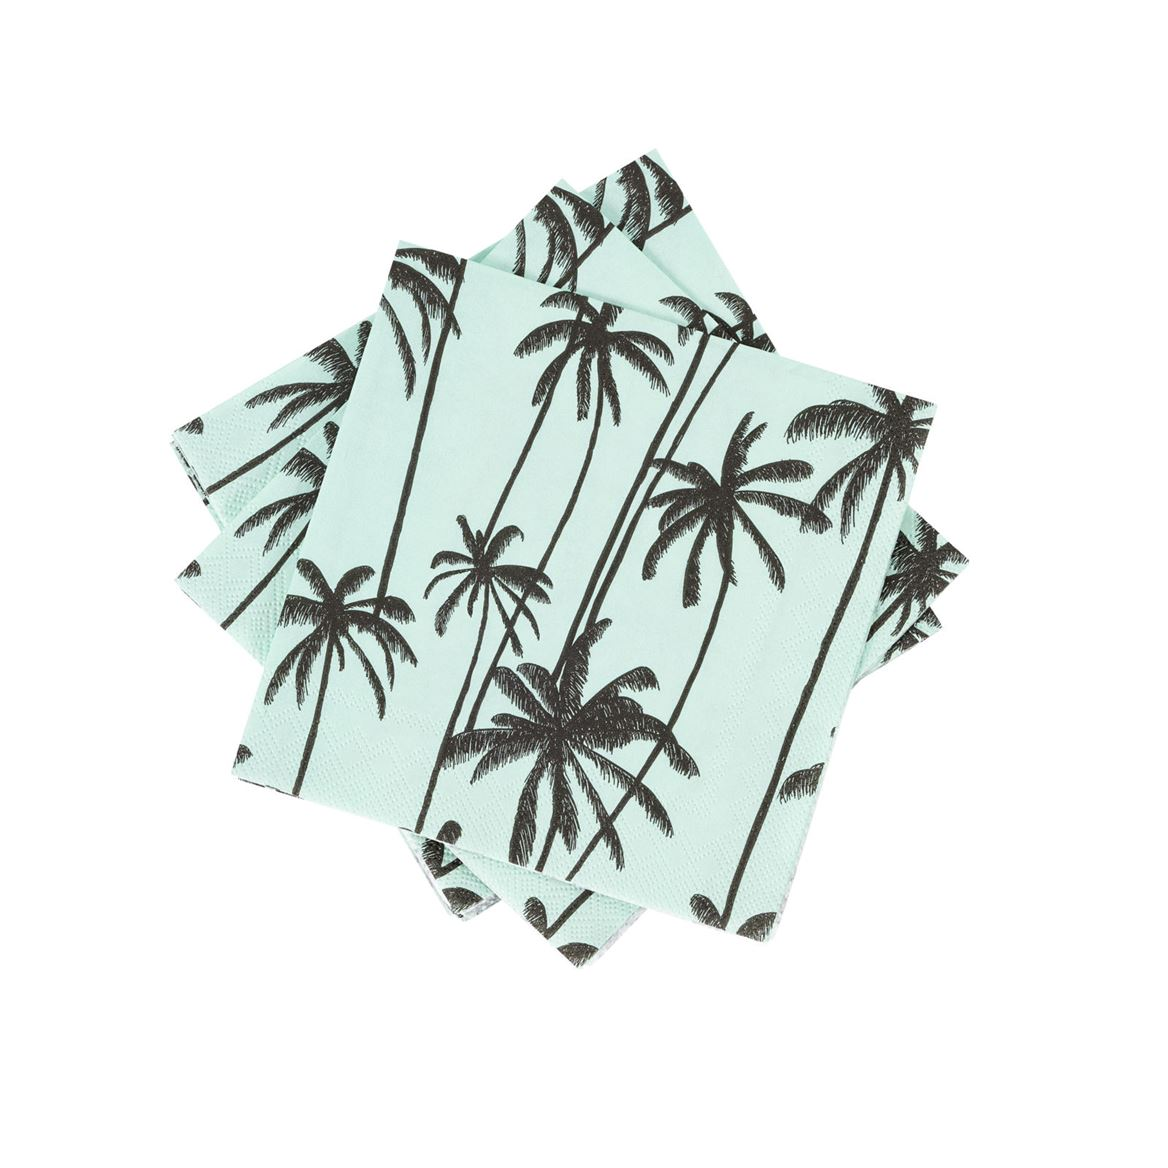 MINTY PALMS Set de 20 serviettes vert Larg. 25 x Long. 25 cm_minty-palms-set-de-20-serviettes-vert-larg--25-x-long--25-cm